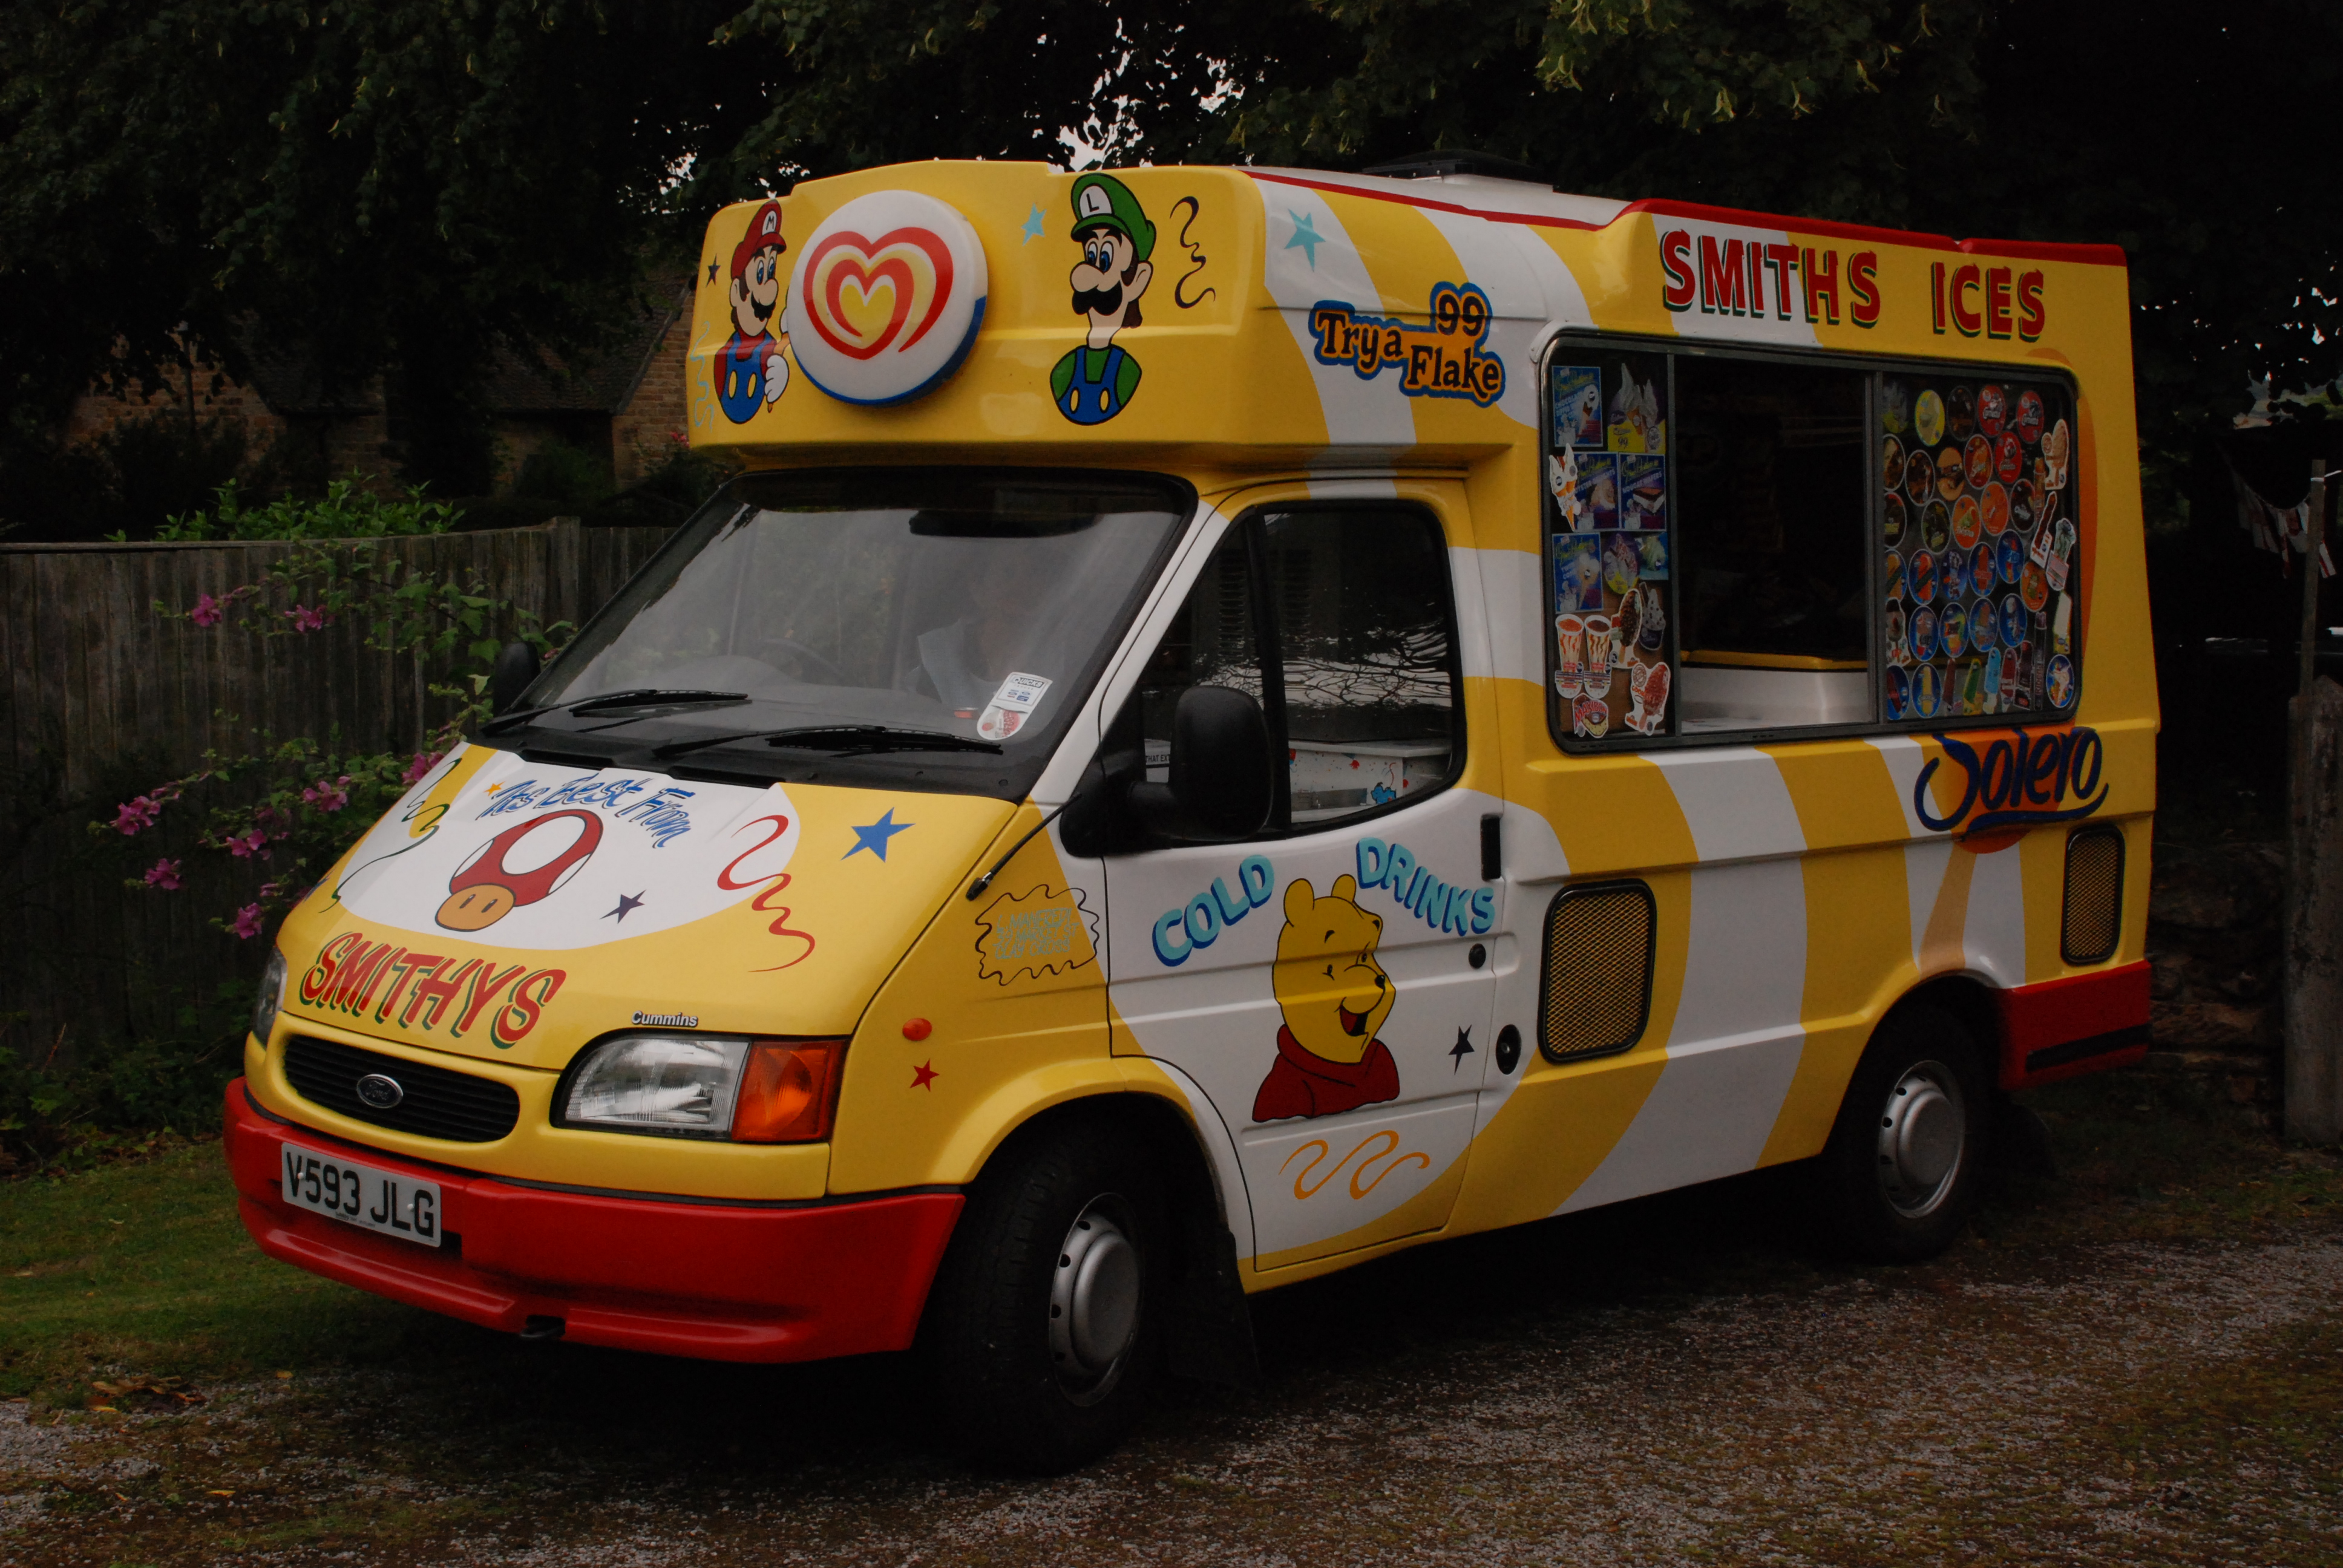 e2e343e33088 A 1999 Ford Transit-based ice cream van in the United Kingdom.